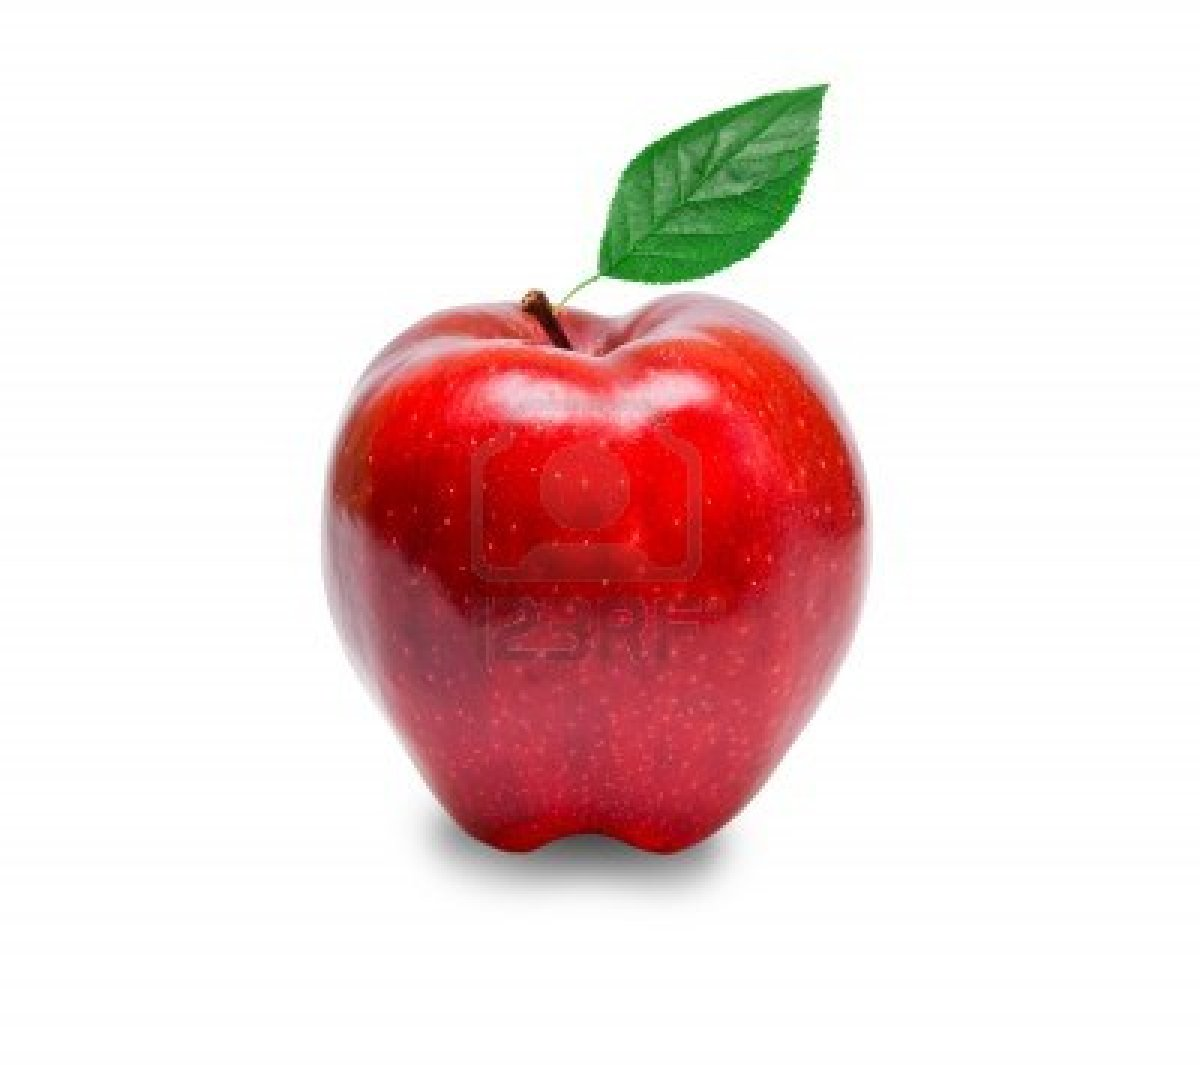 the rotten apple injures its neighbours 274+47 sentence examples: 1 the rotten apple injures its neighbours 2 one rotten apple spoils the whole barrel 3 don't throw away the apple because of the core.